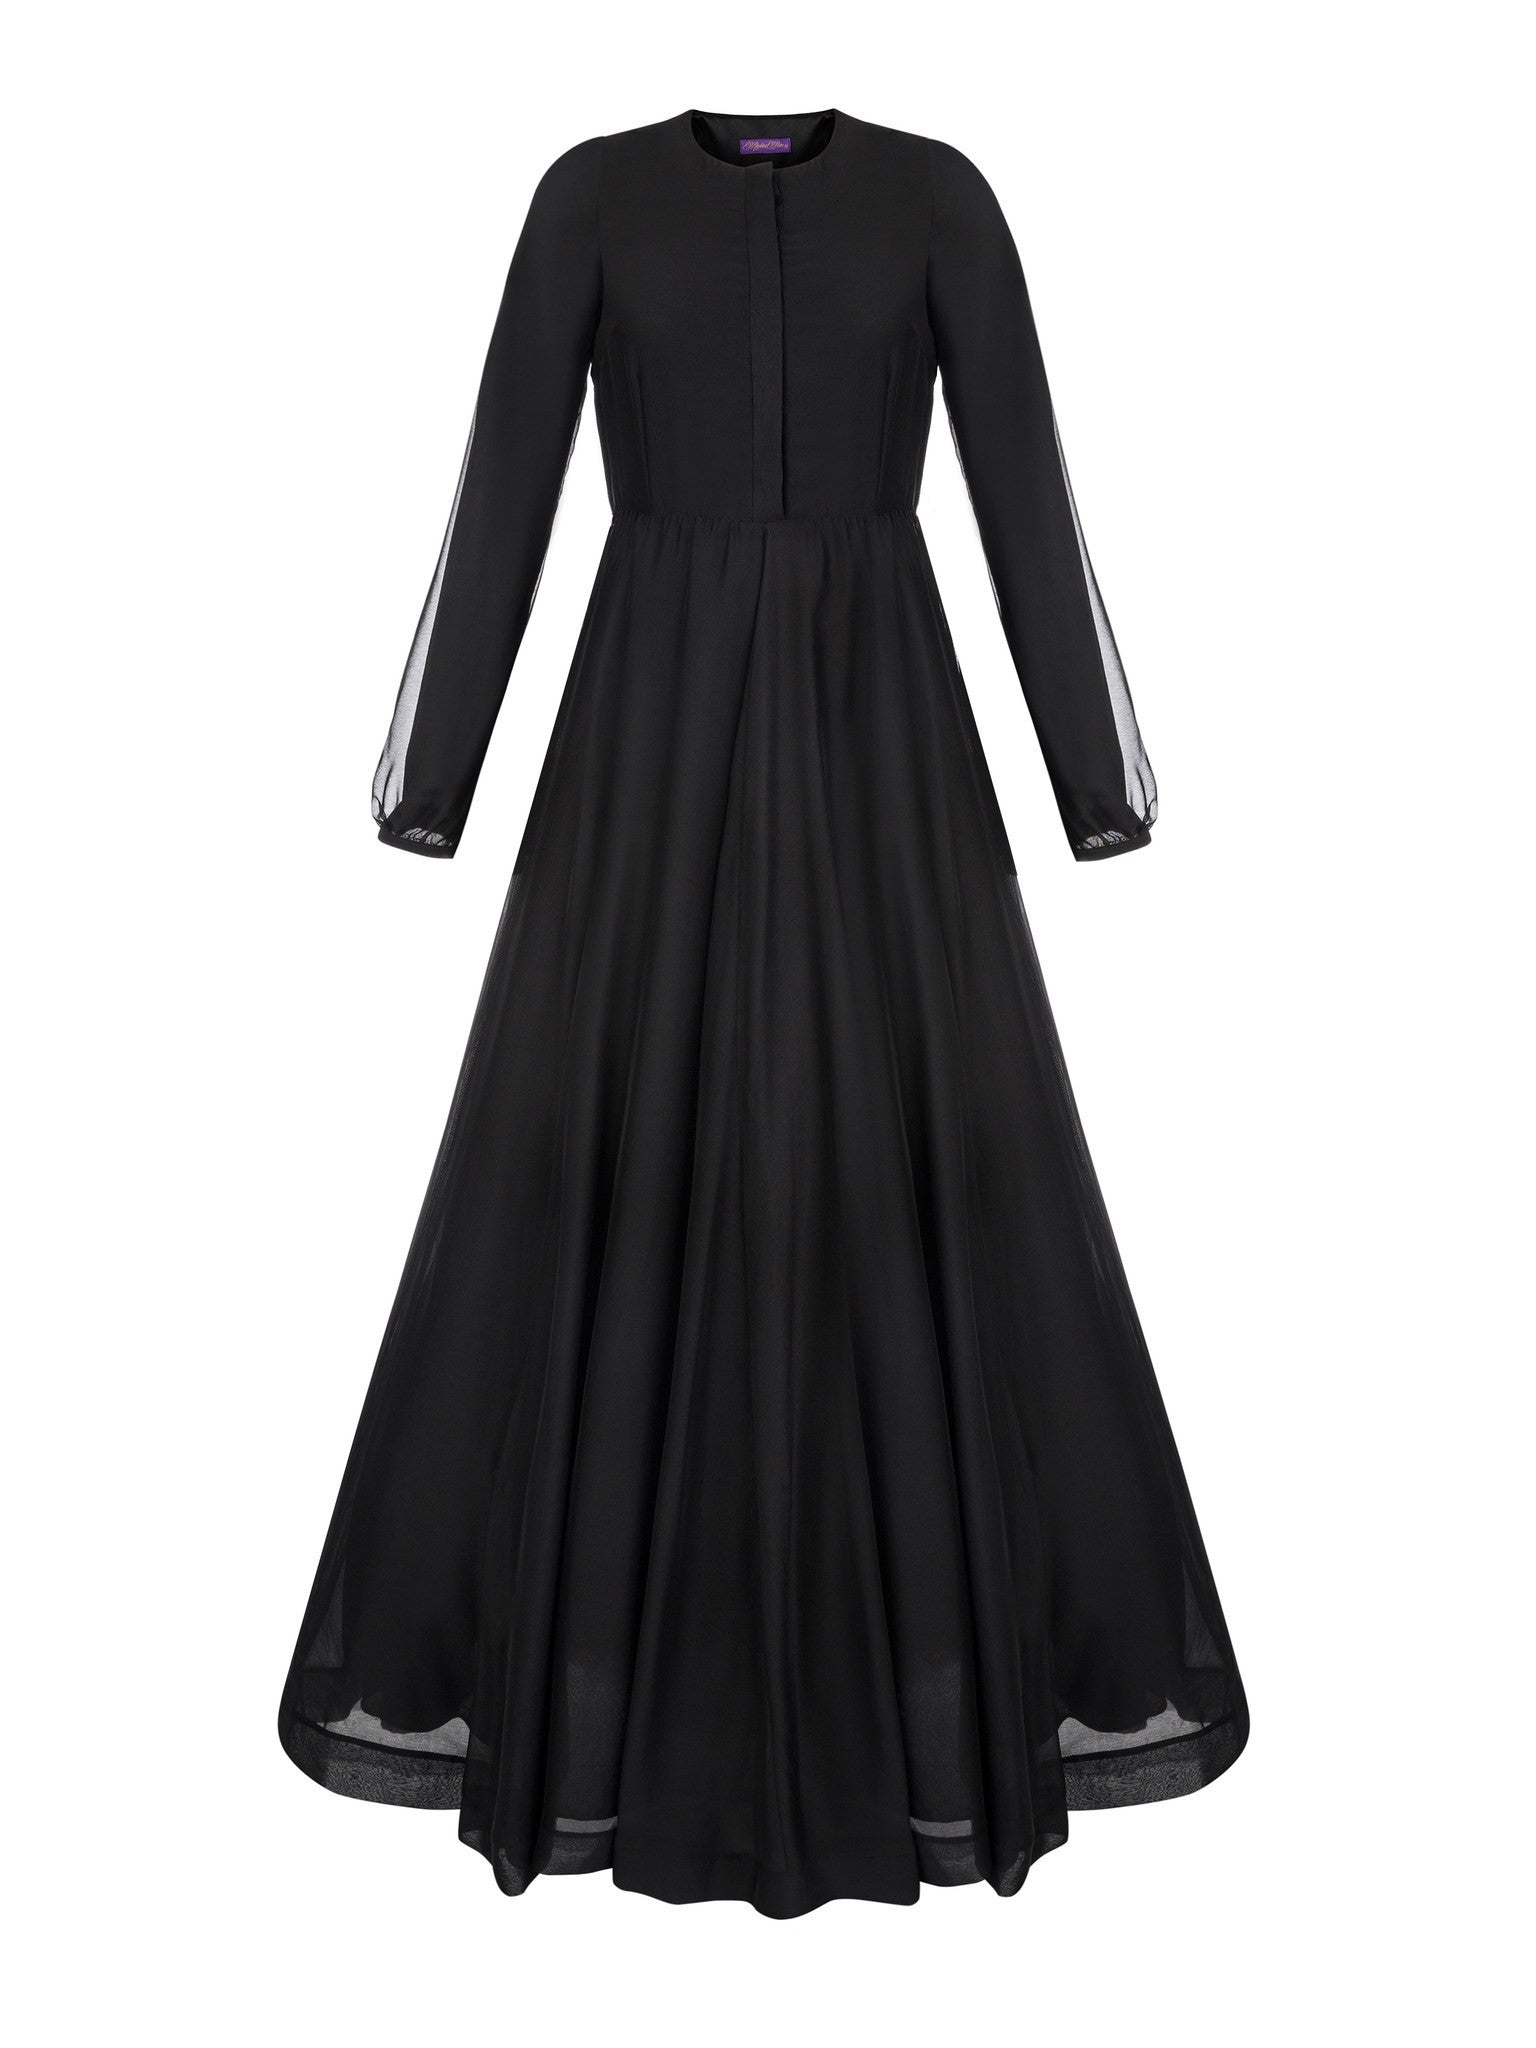 Muslima Wear French Chiffon Dress front